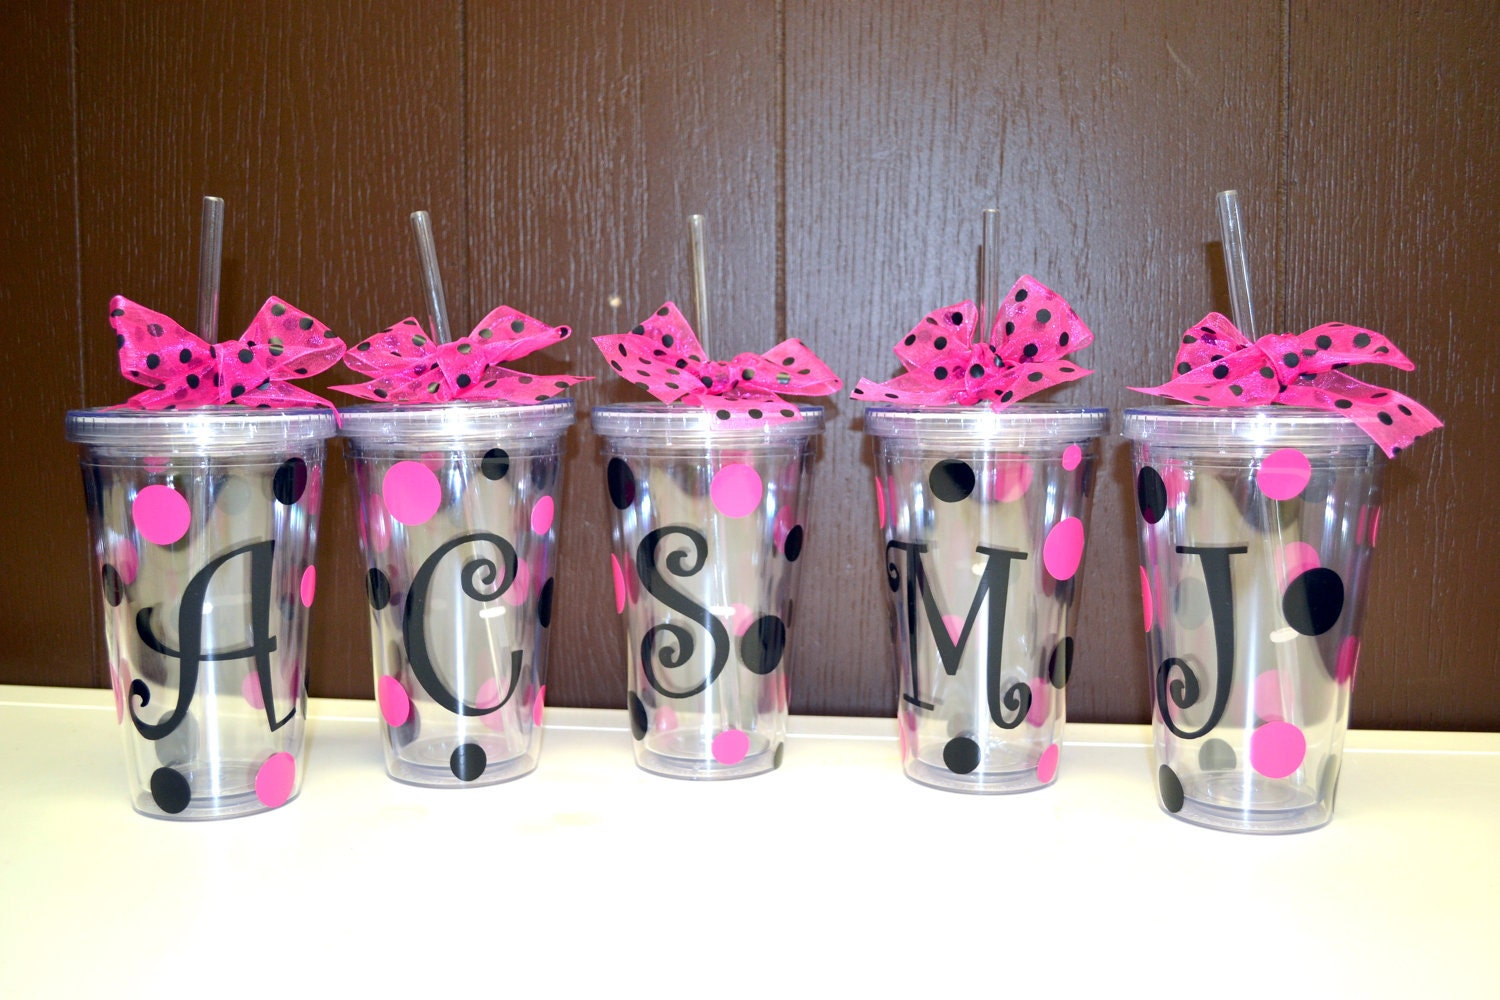 Wedding Bridesmaids Gifts: 5 FIVE Bridesmaid Gifts Personalized Cups By